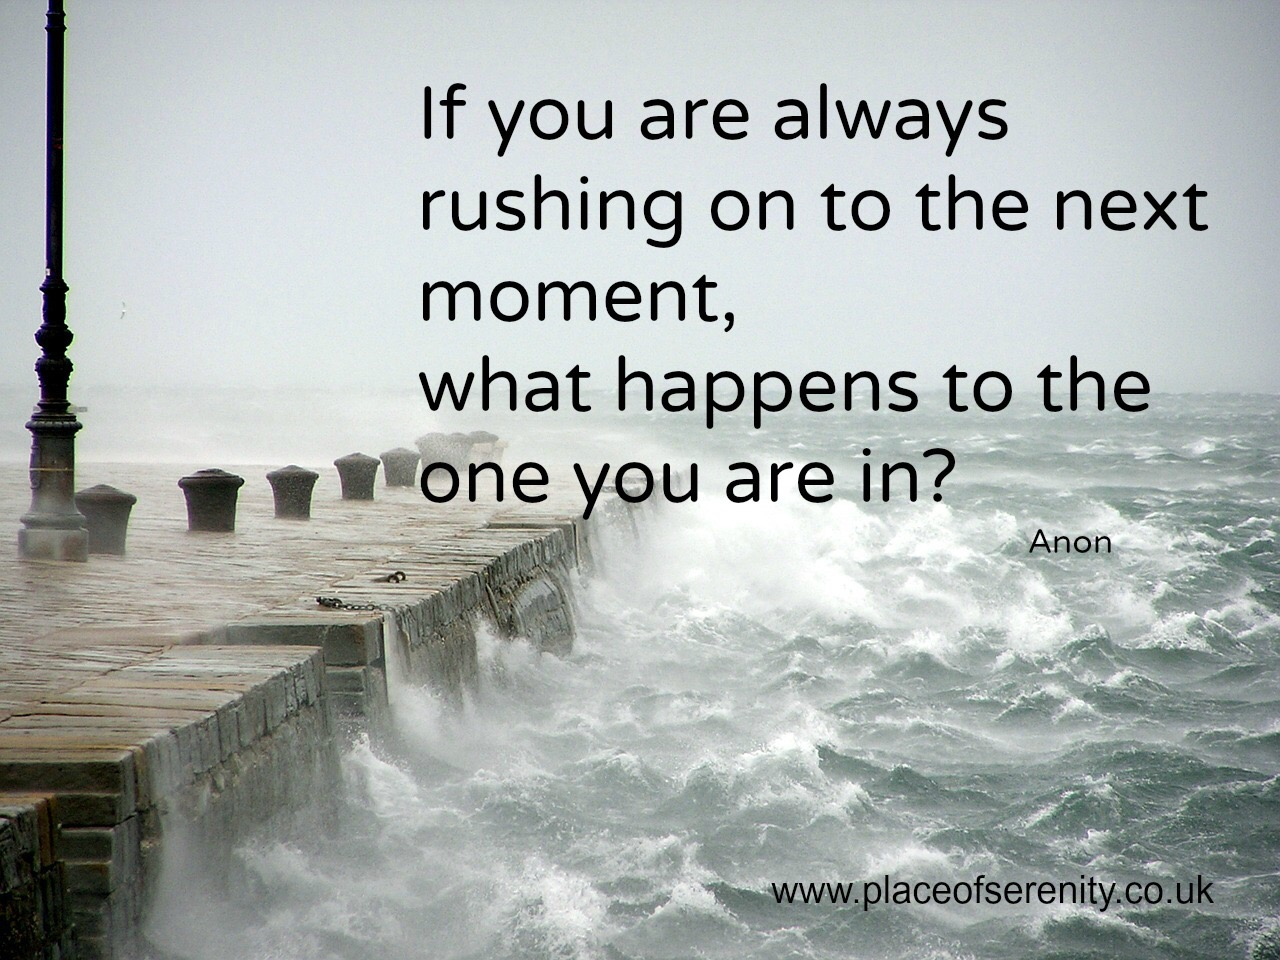 If you're always rushing on to the next moment, what happens to the one you are in? quote on a stormy background